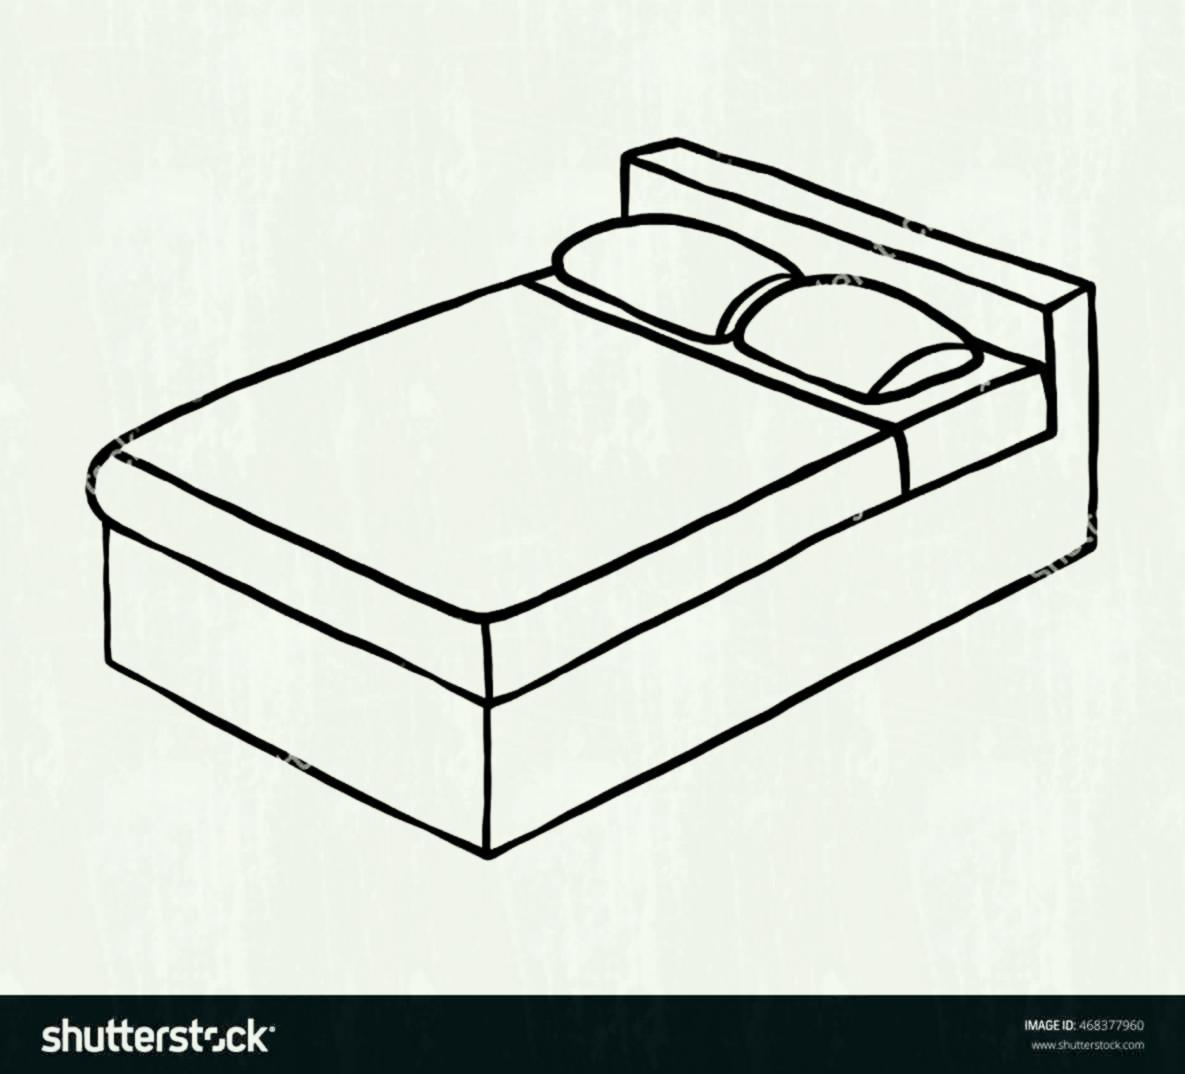 Bed clipart black and white 5 » Clipart Portal.